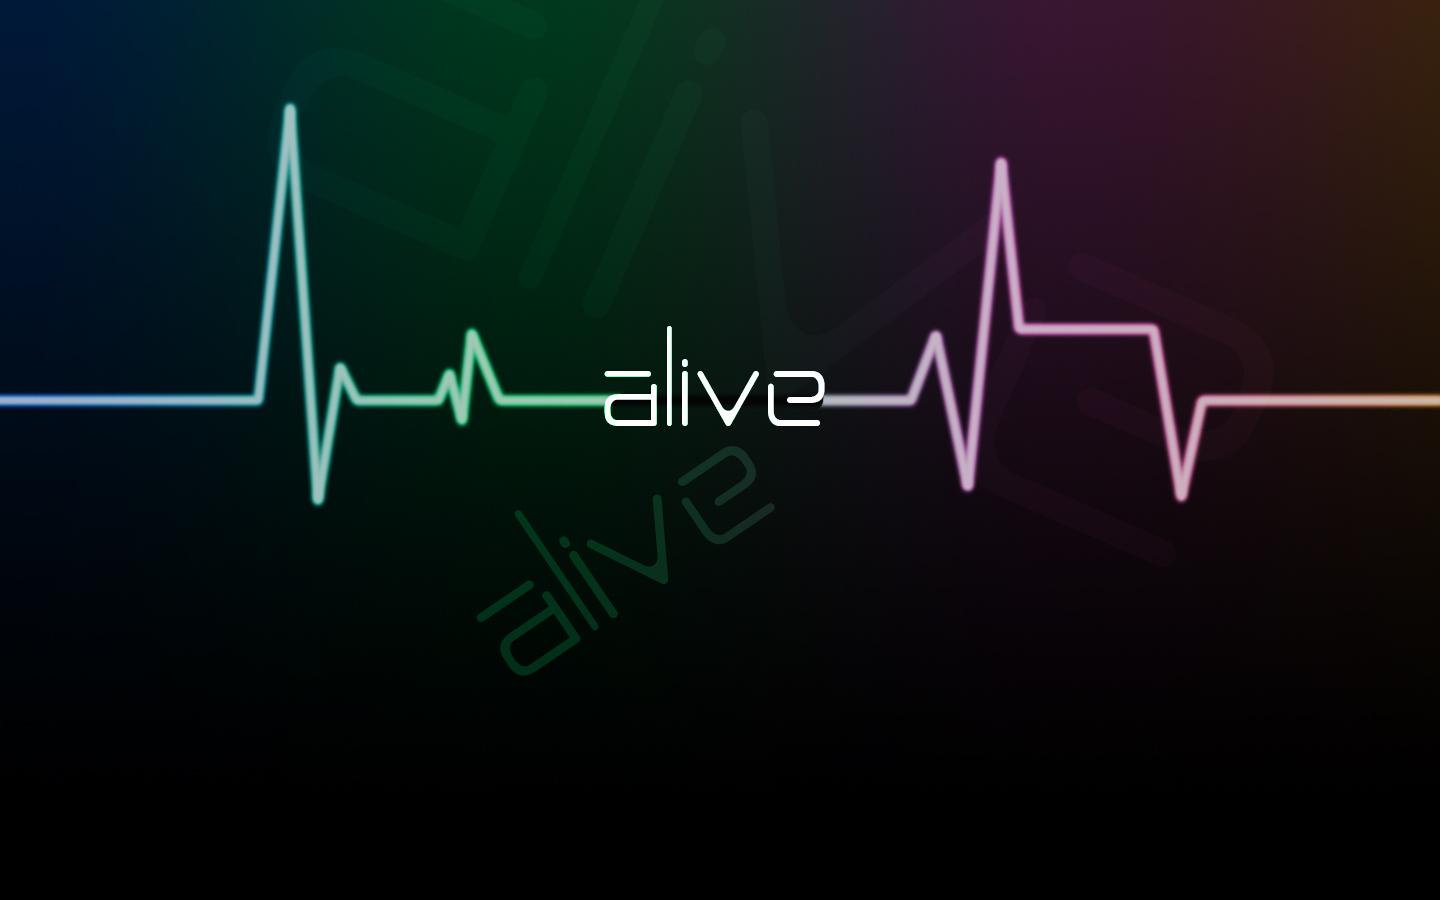 Download Alive Wallpaper 1440x900 Wallpoper 388604 1440x900